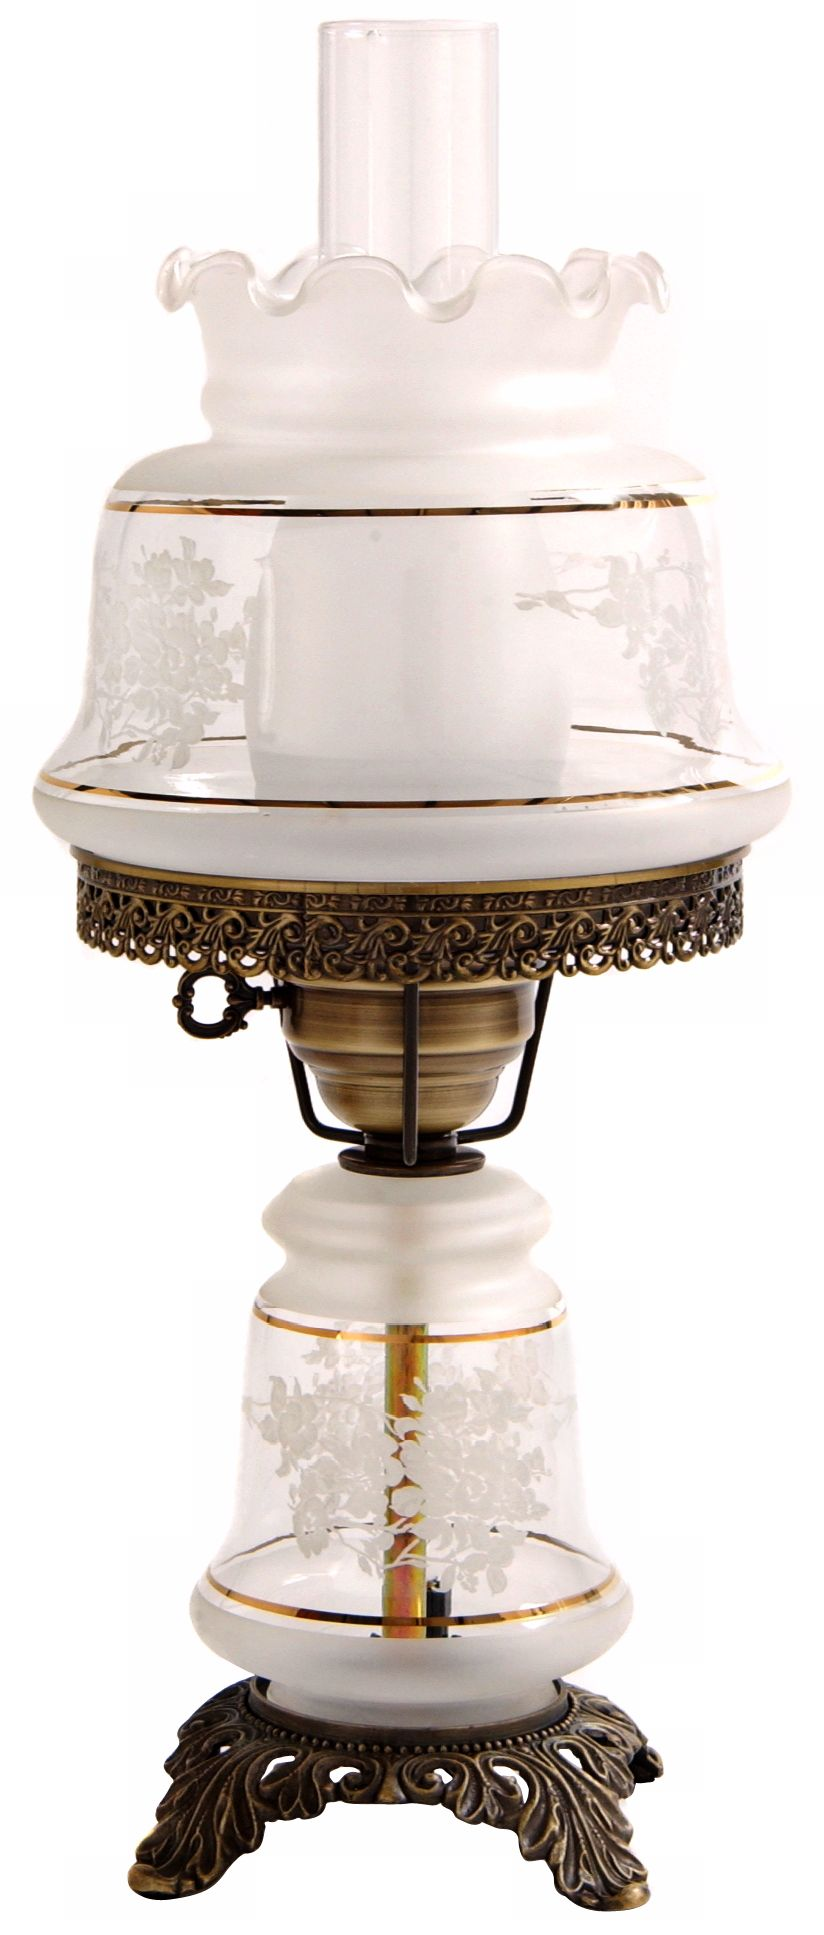 Small Etched White and Gold Night Light Hurricane Table